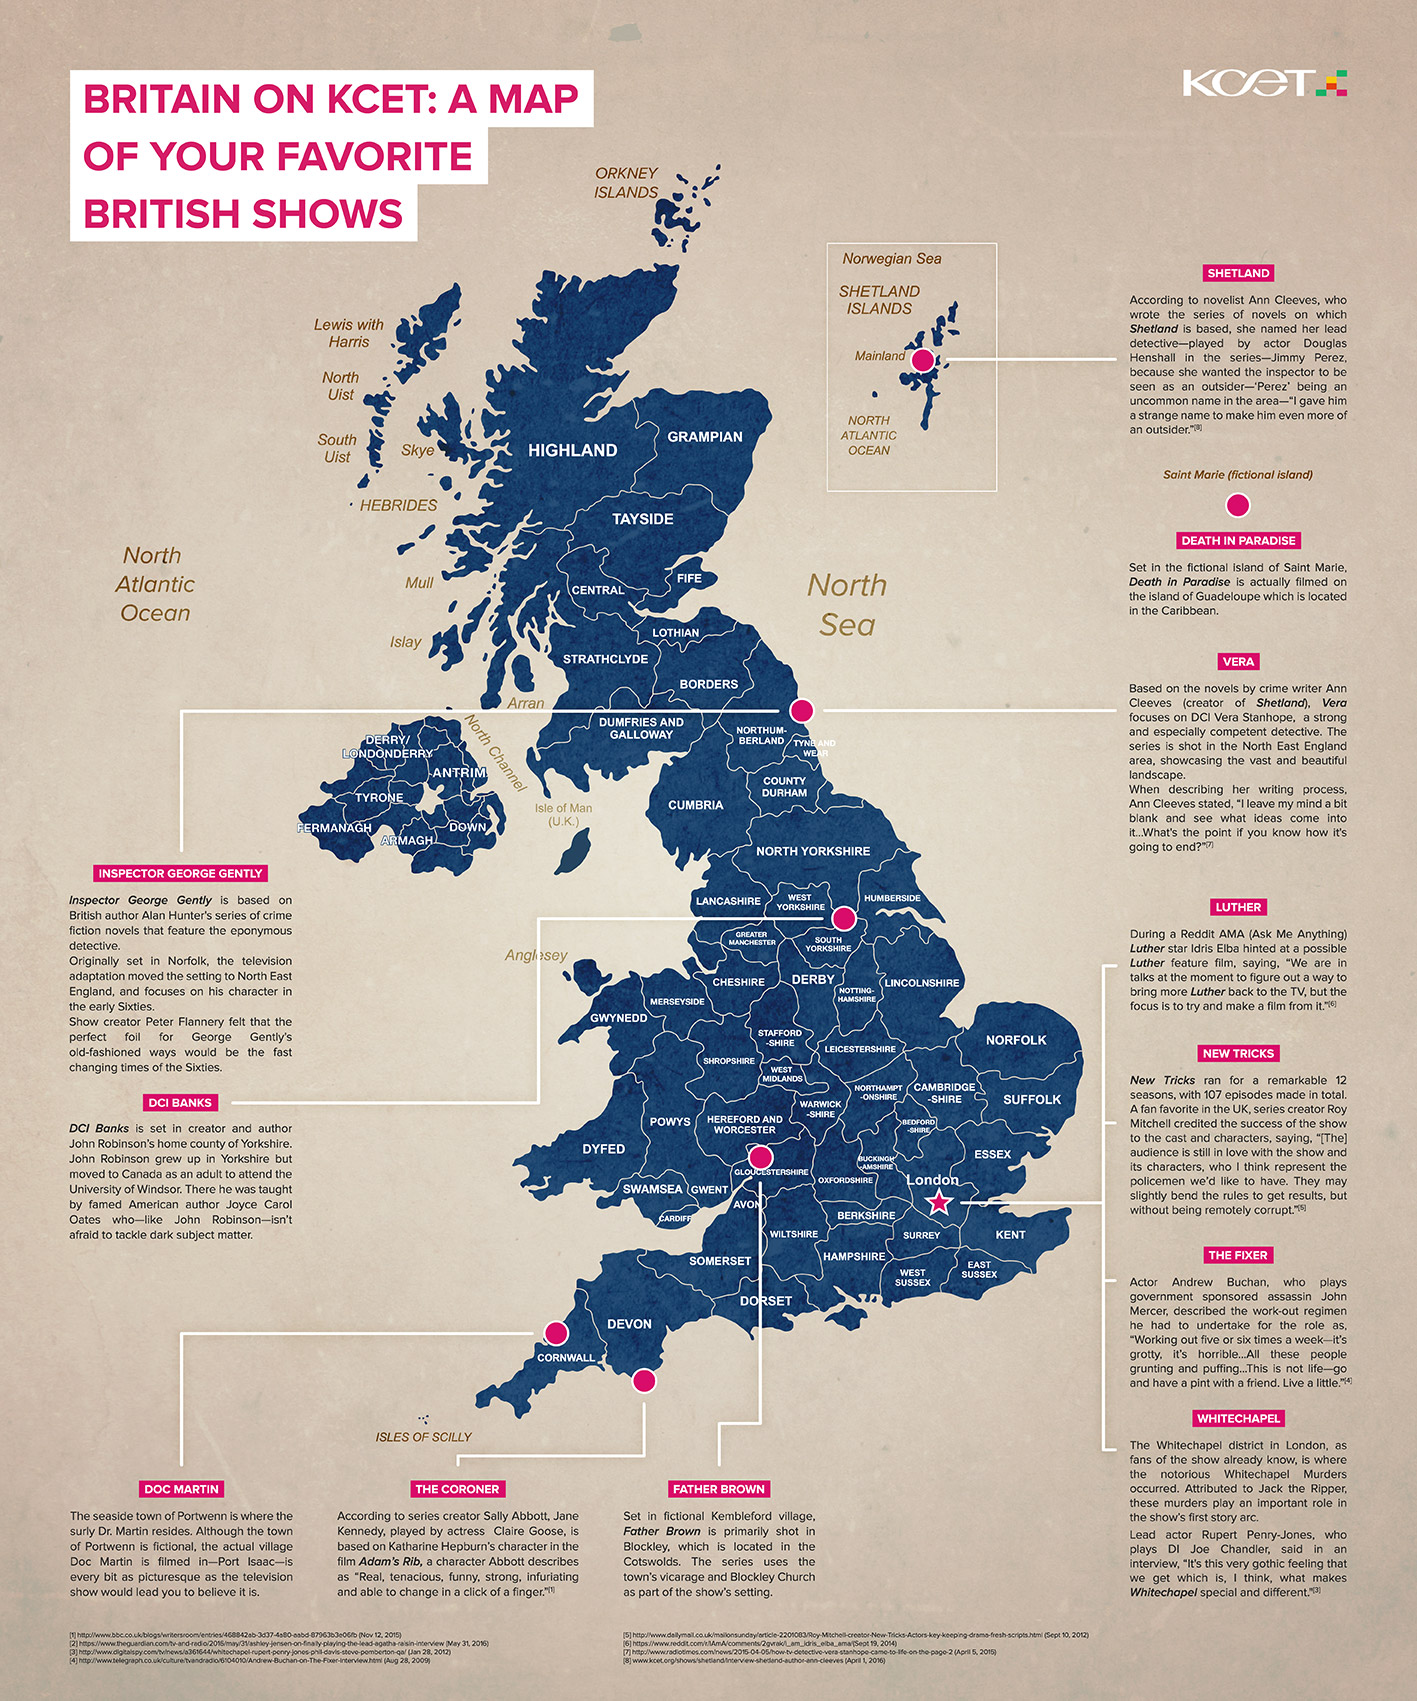 Britain On KCET A Map Of Your Favorite British Shows KCET - Britain on a map